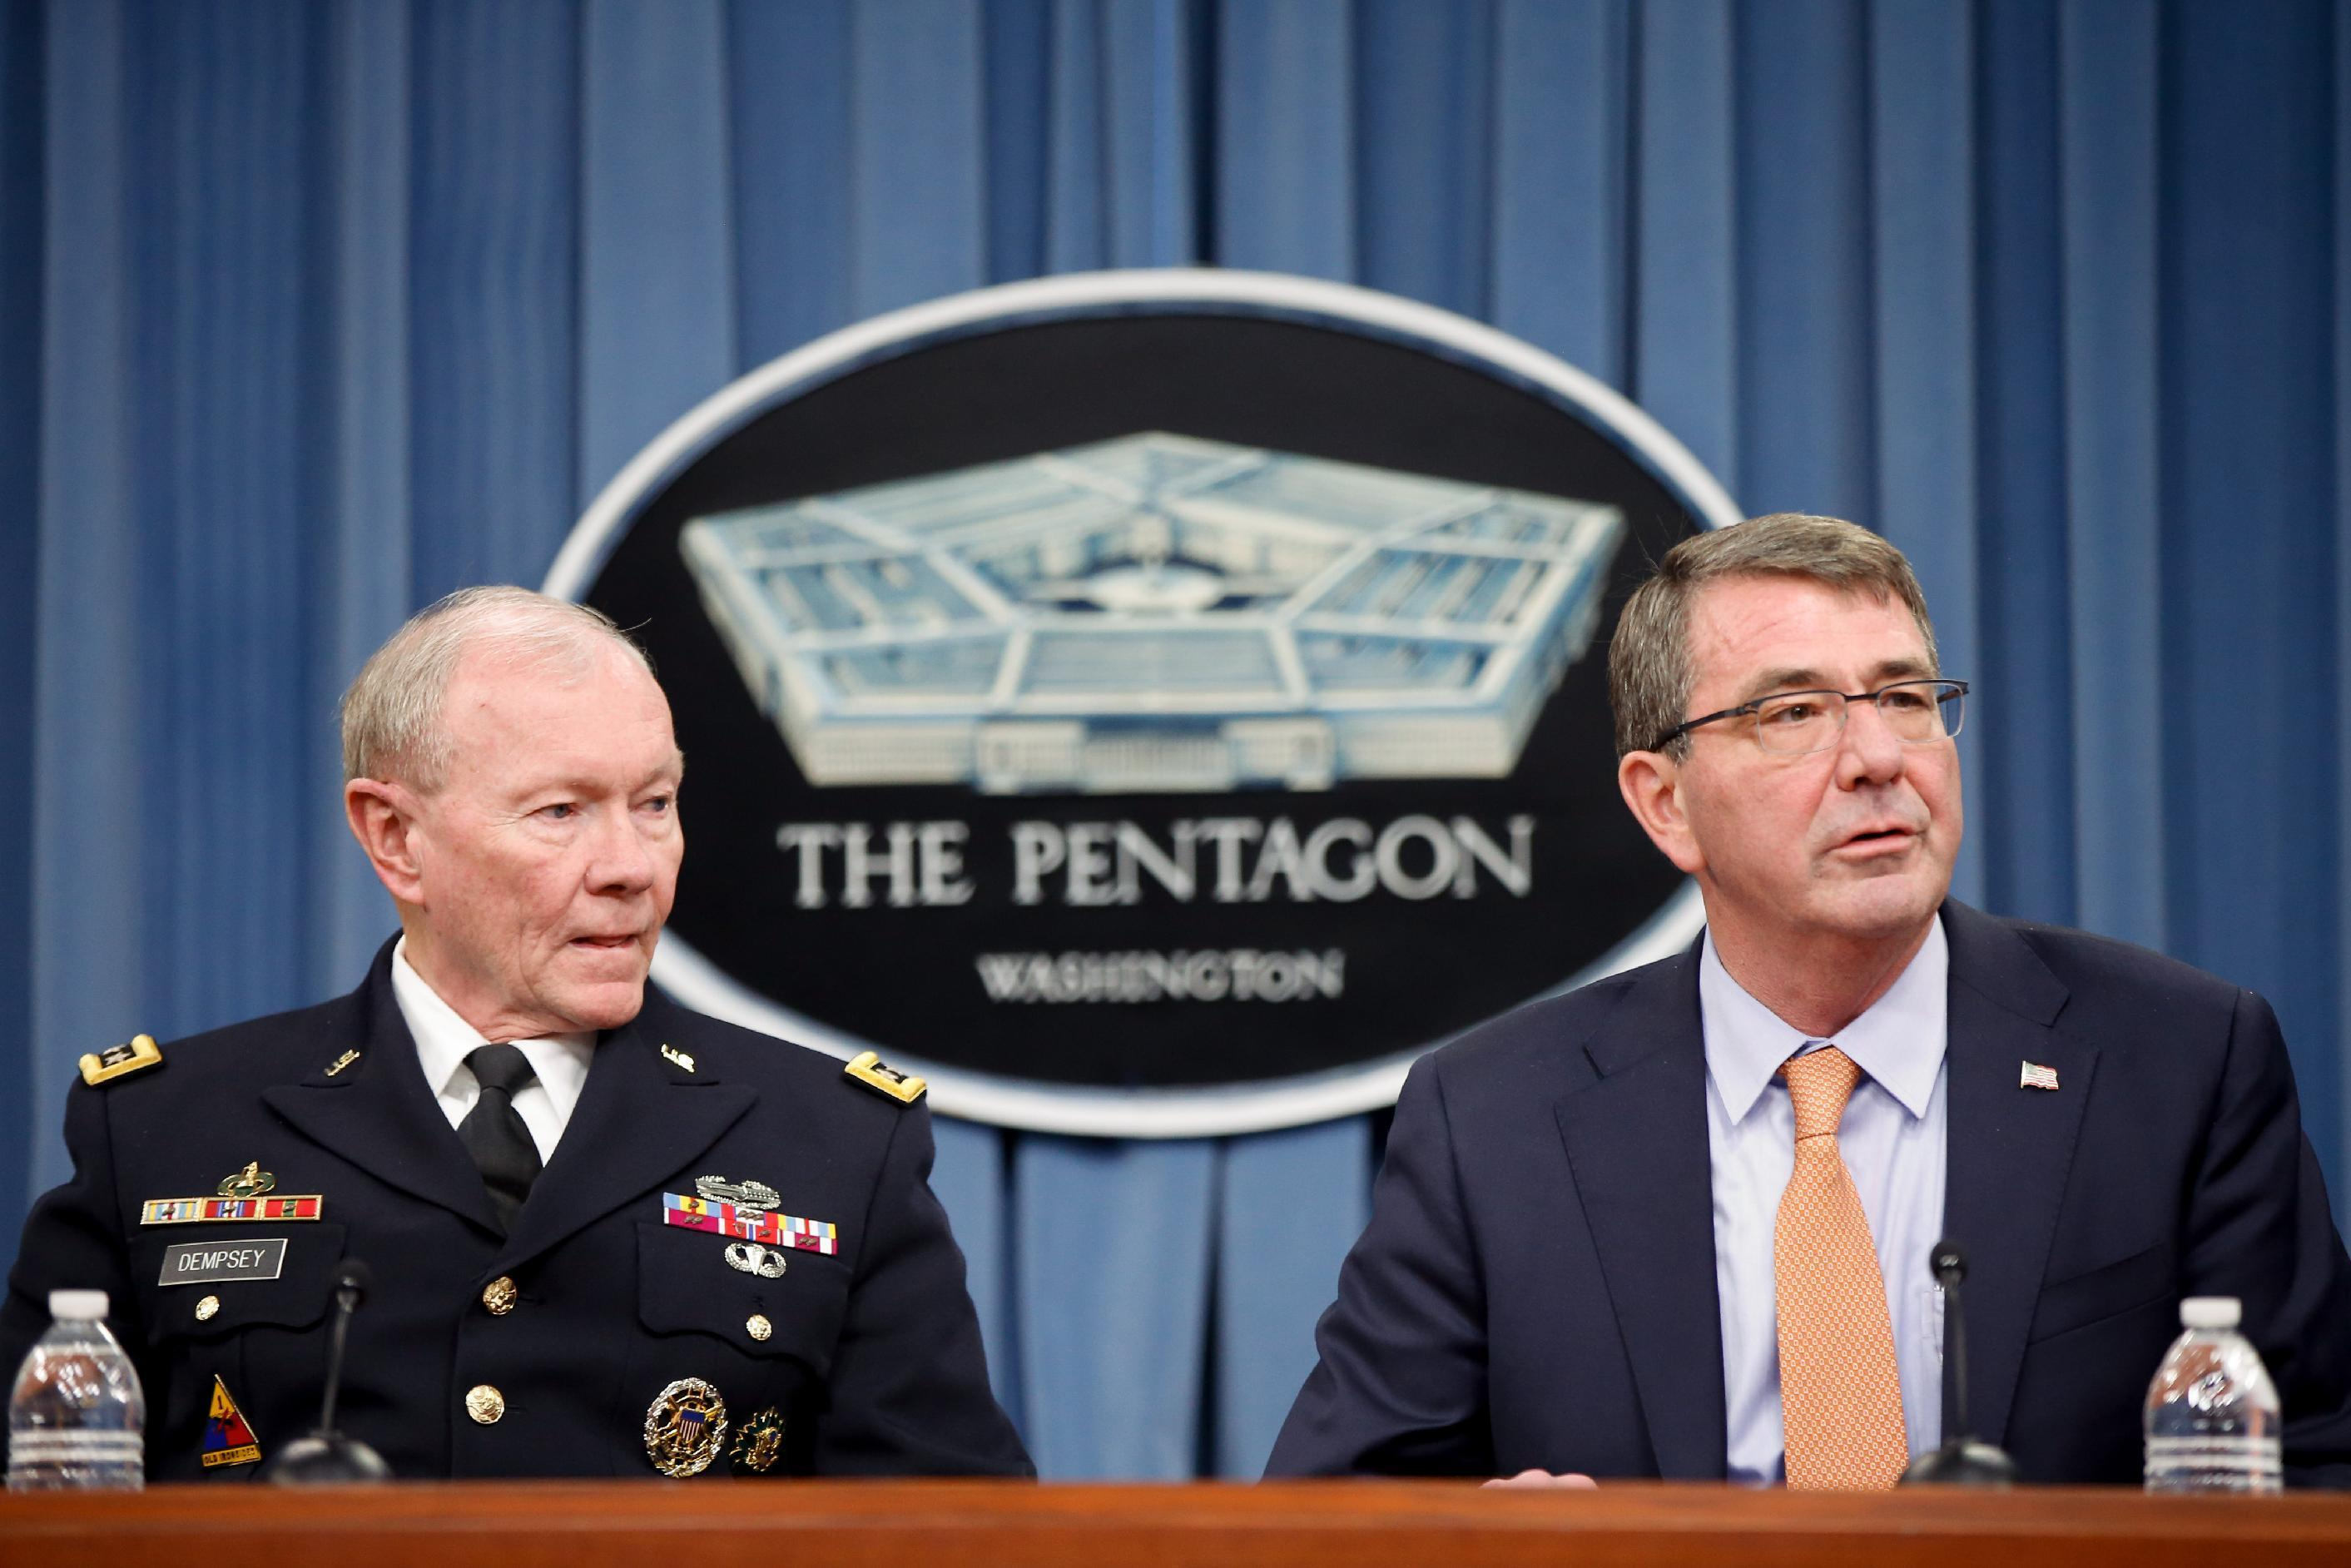 FILE - In this April 16, 2015, file photo, Defense Secretary Ash Carter, right, accompanied by Joint Chiefs Chairman Gen. Martin Dempsey, left, speaks during a news conference at the Pentagon. Two of America's top military leaders will be asked to defend President Barack Obama's handling of the tinderbox of violence and struggle in the Middle East. Defense Secretary Ash Carter and Gen. Martin Dempsey, who is finishing a four-year stint as chairman of the Joint Chiefs of Staff, are to appear Wednesday, June 17, 2015, before the House Armed Services Committee. (AP Photo/Andrew Harnik, File)